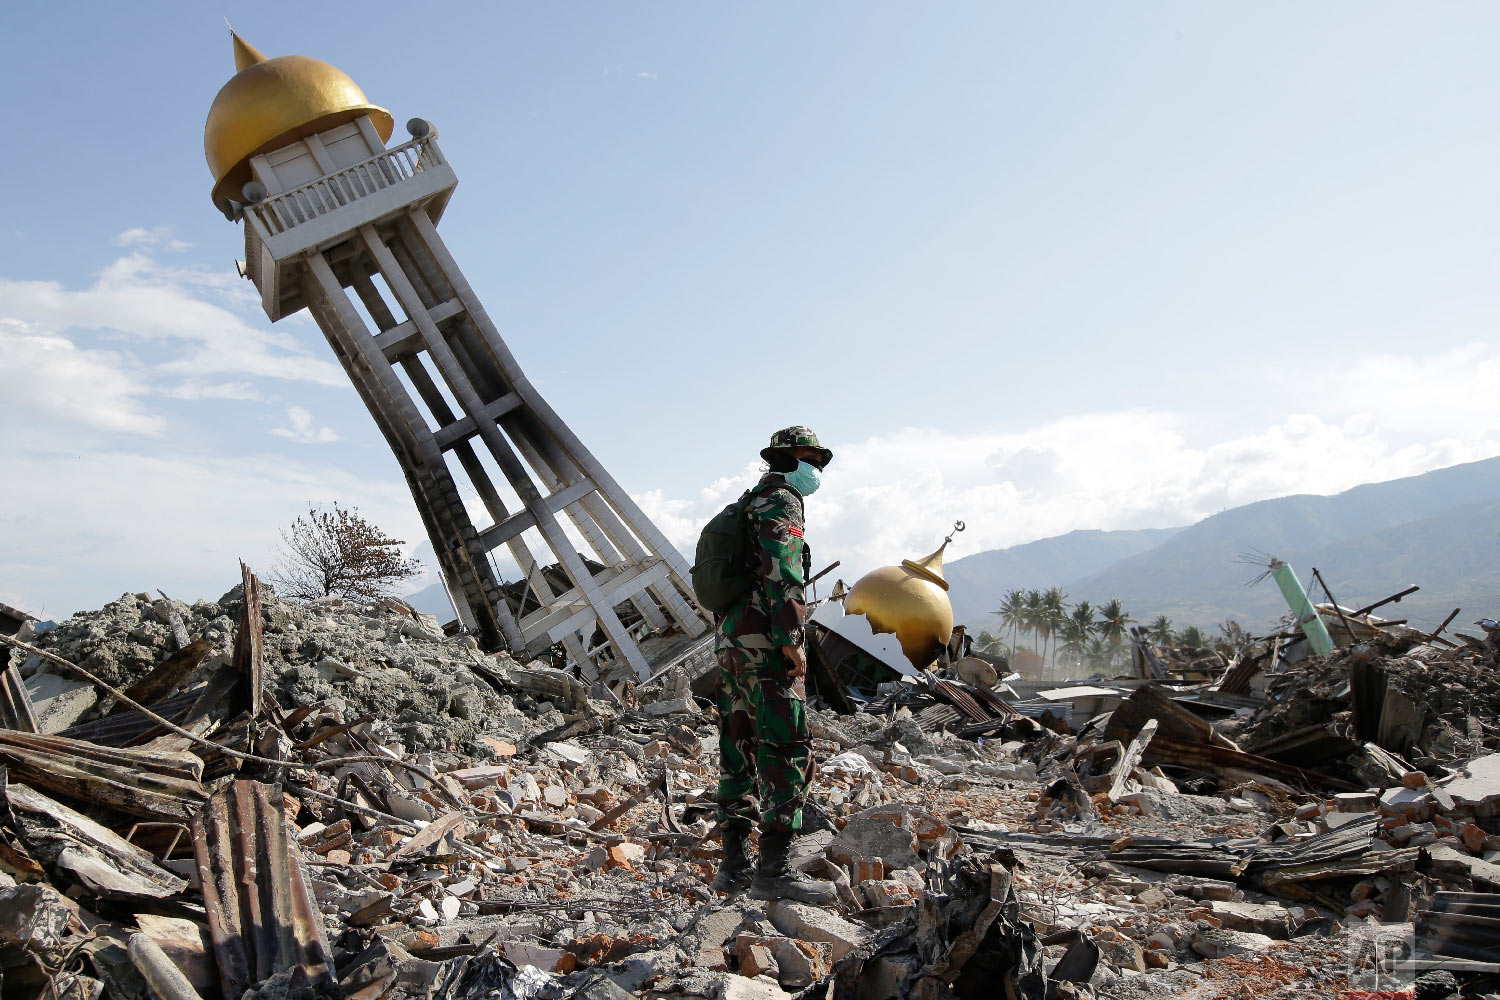 An Indonesian trooper stands beside a toppled mosque as recovery efforts continue at the earthquake-hit Balaroa neighborhood in Palu, Central Sulawesi, Indonesia, on Oct. 6, 2018. (AP Photo/Aaron Favila)